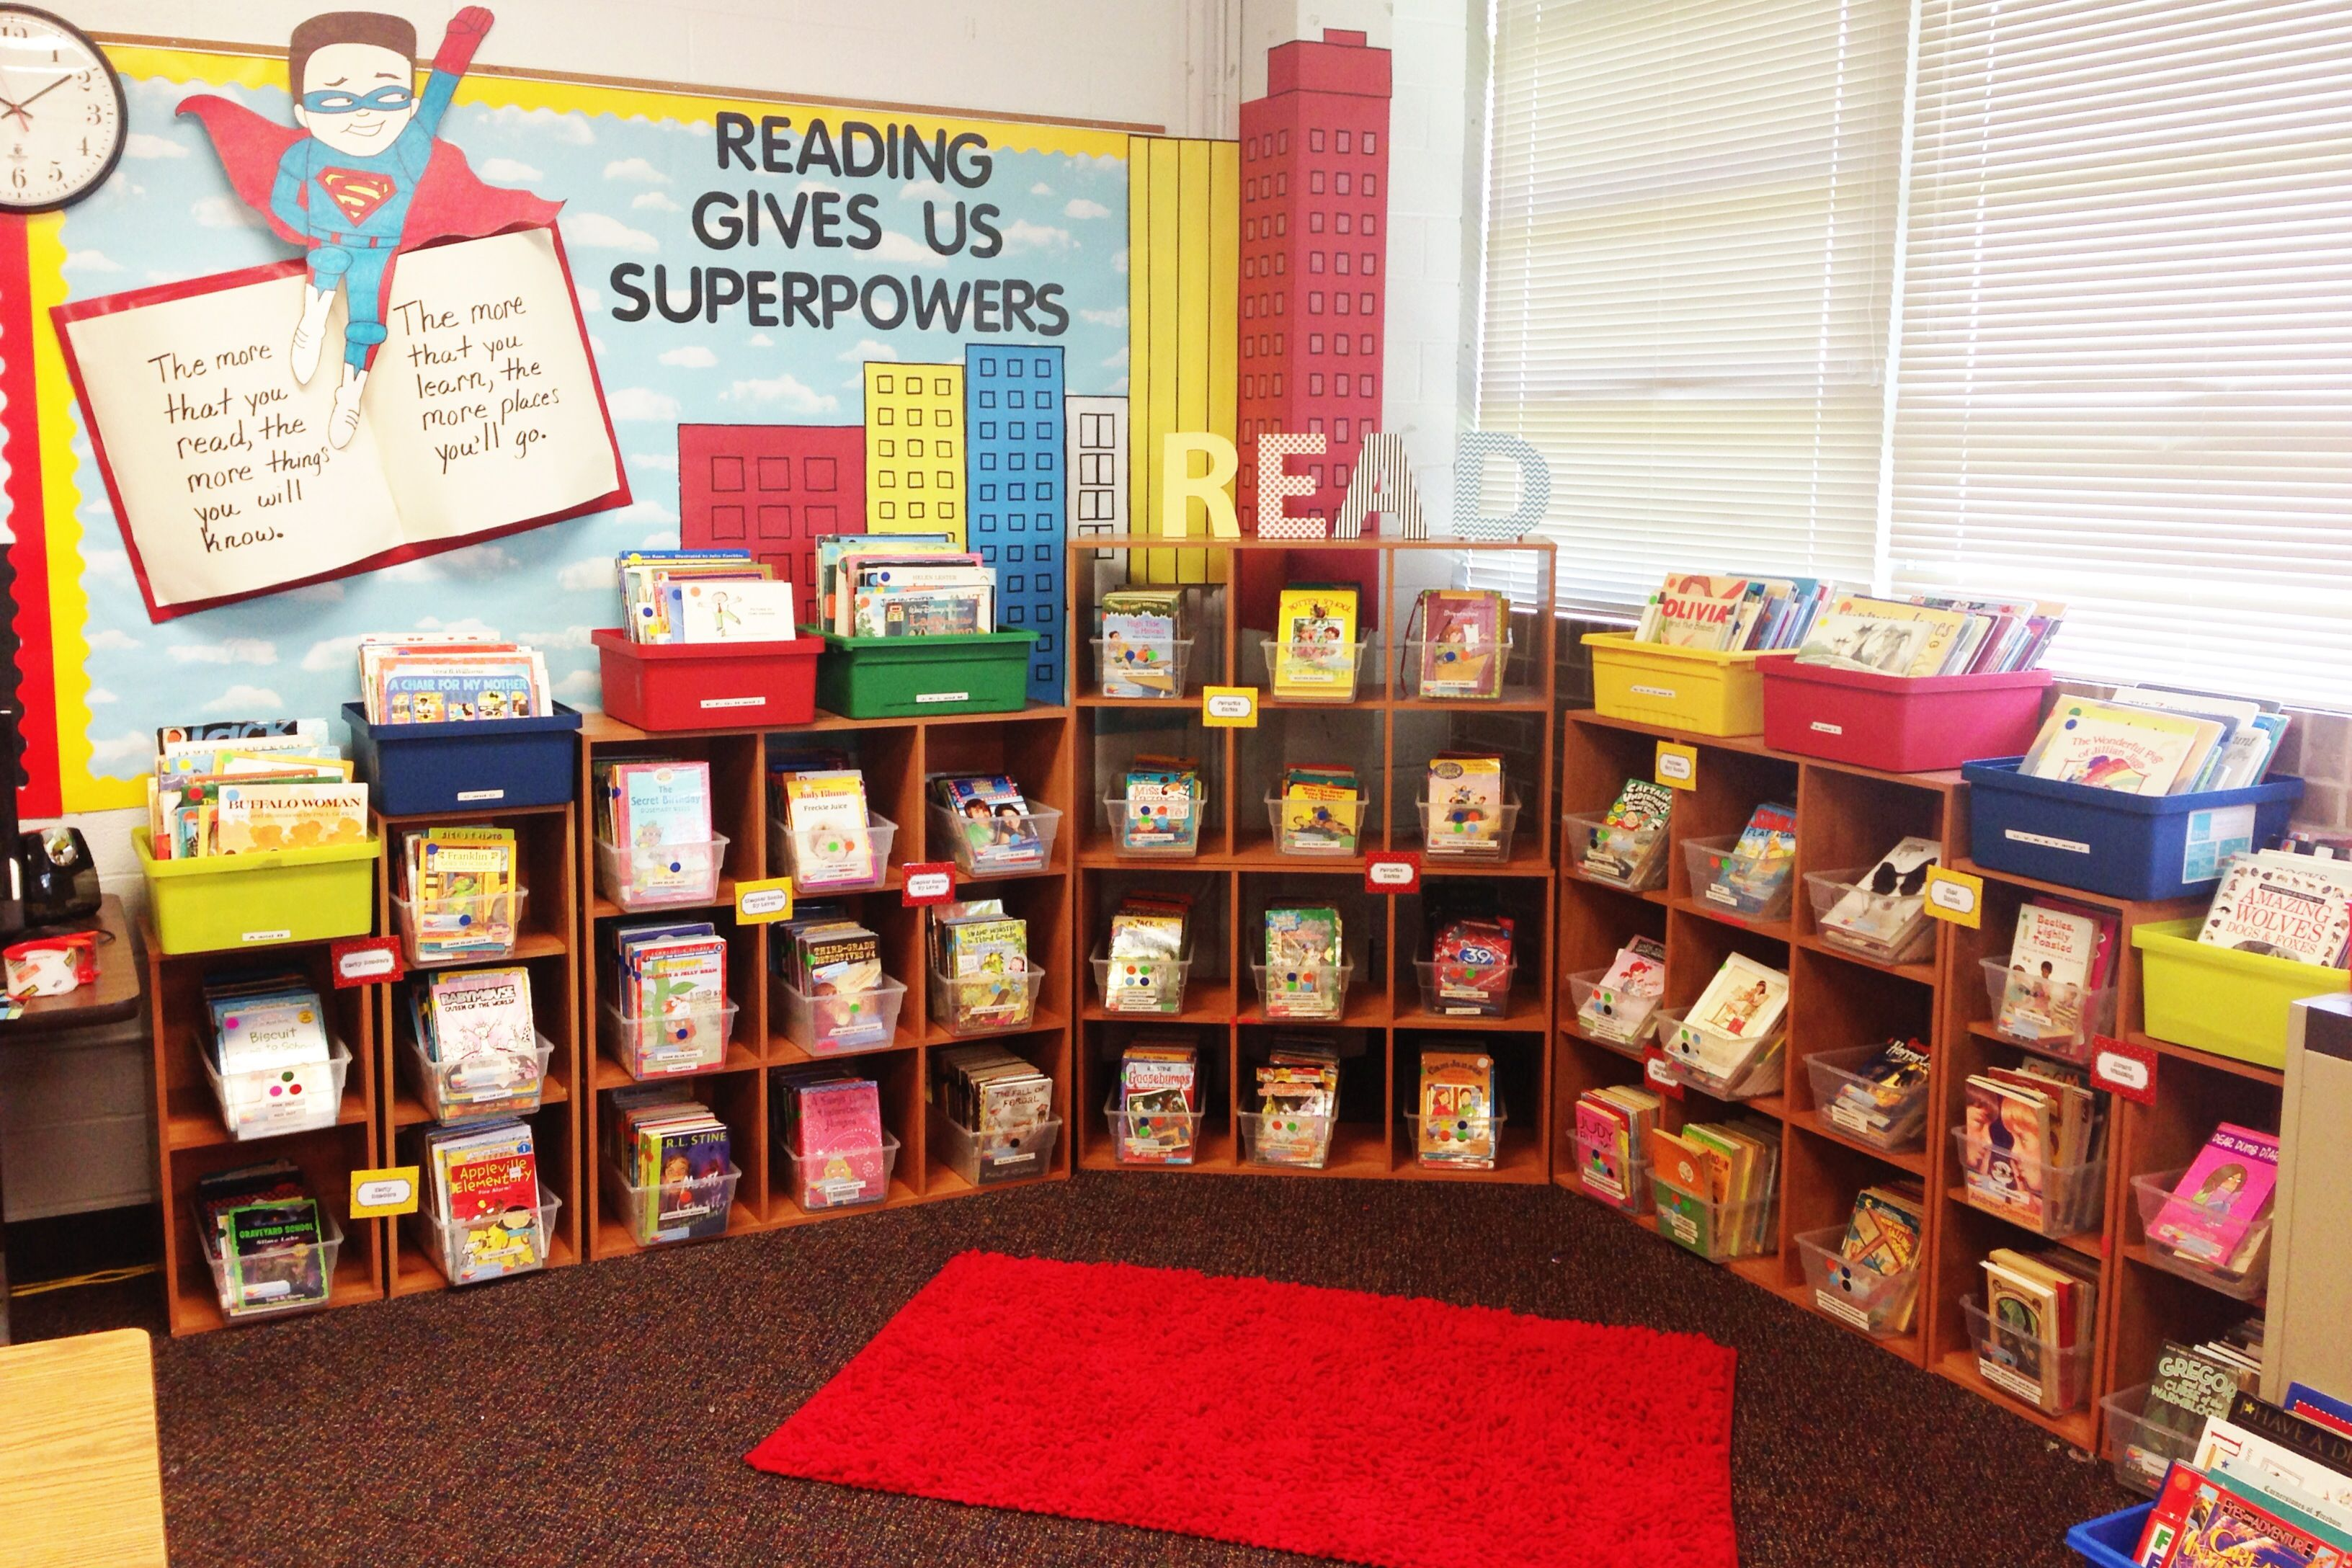 Superhero classroom library - smaller scale for playroom nook?